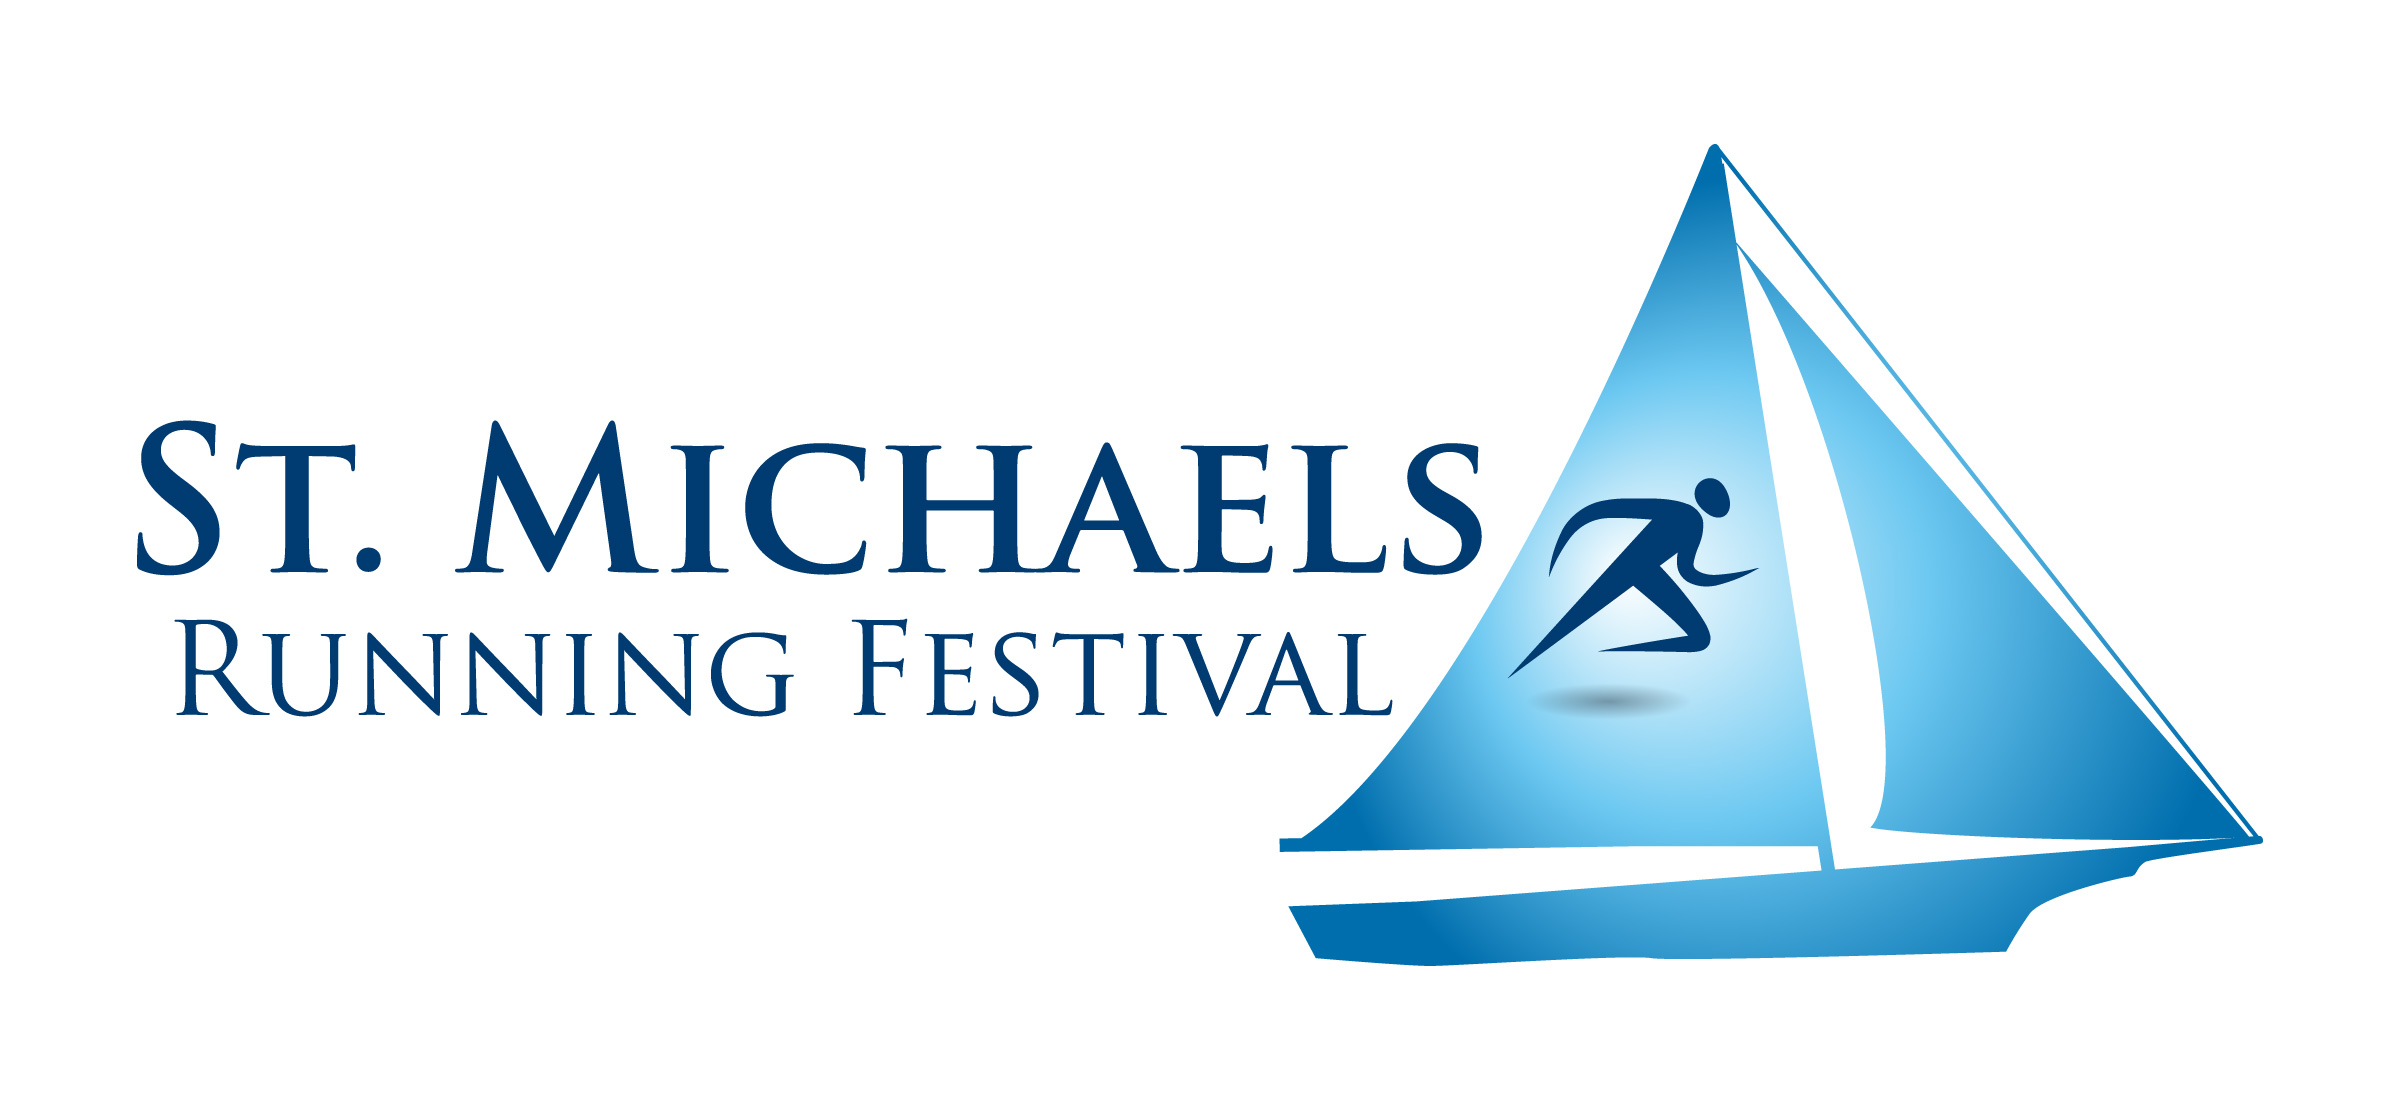 St. Michaels running festival